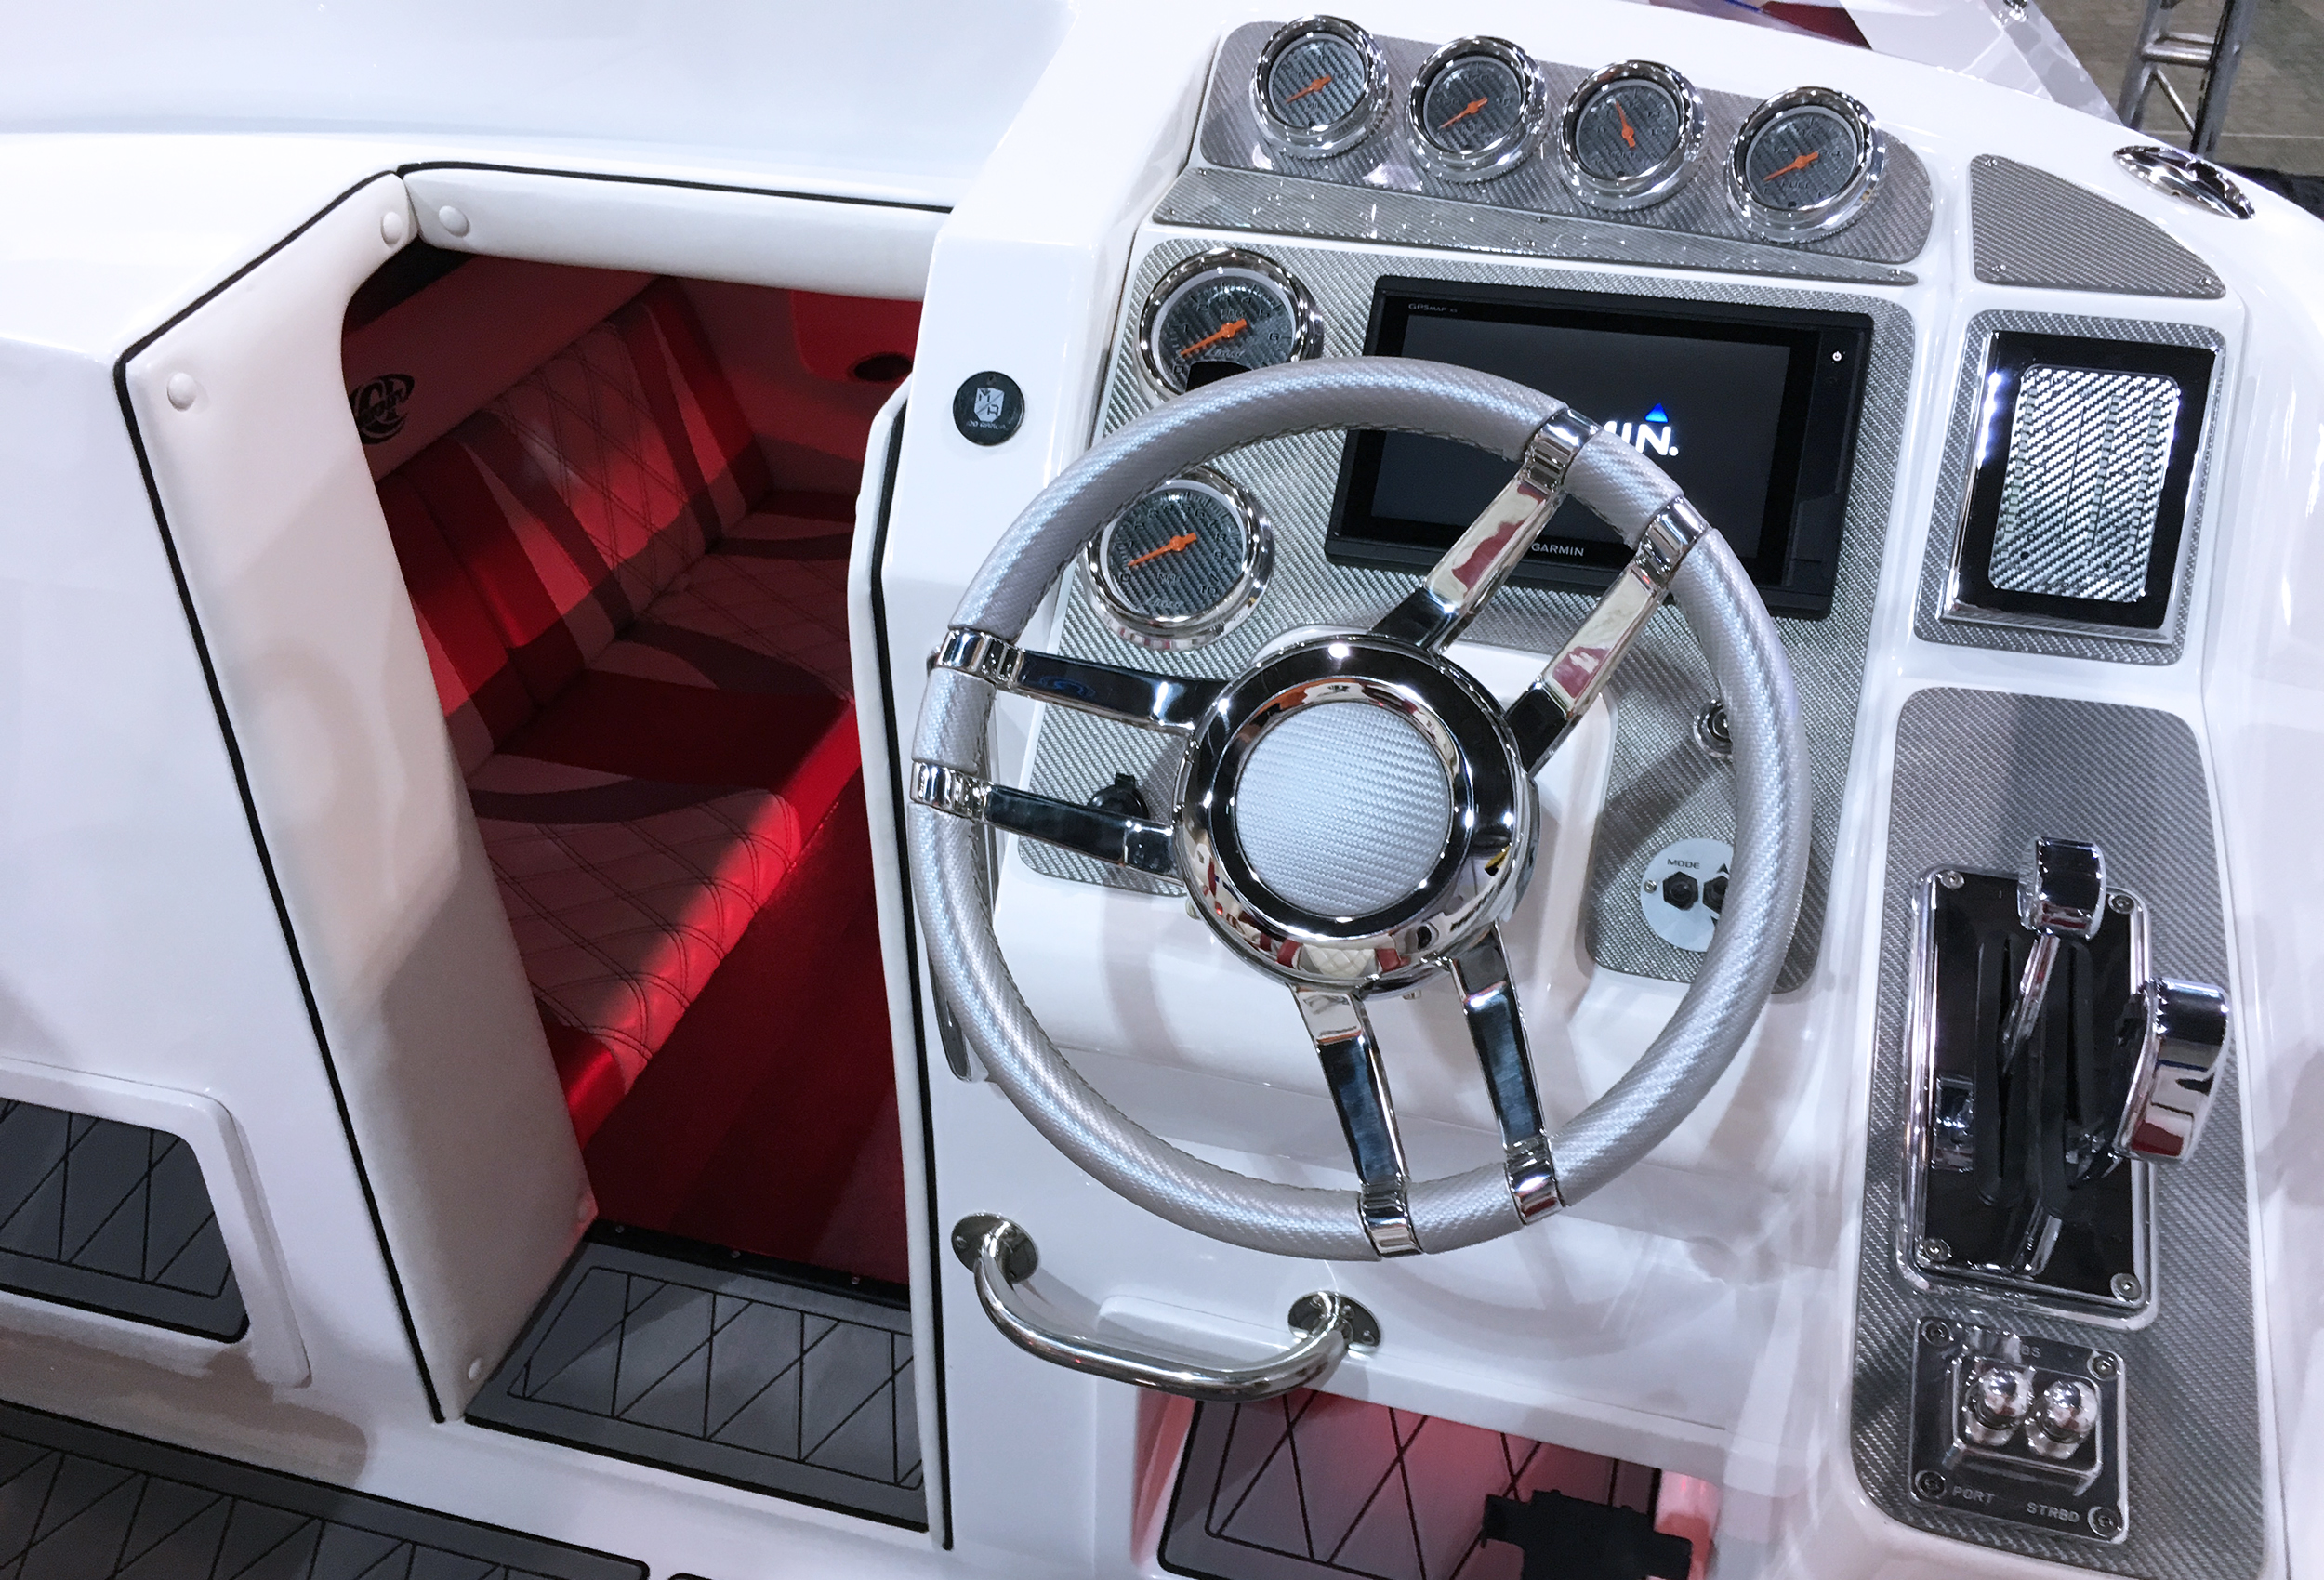 29 NuEra Lavey Craft carbon fiber dashboard.jpg